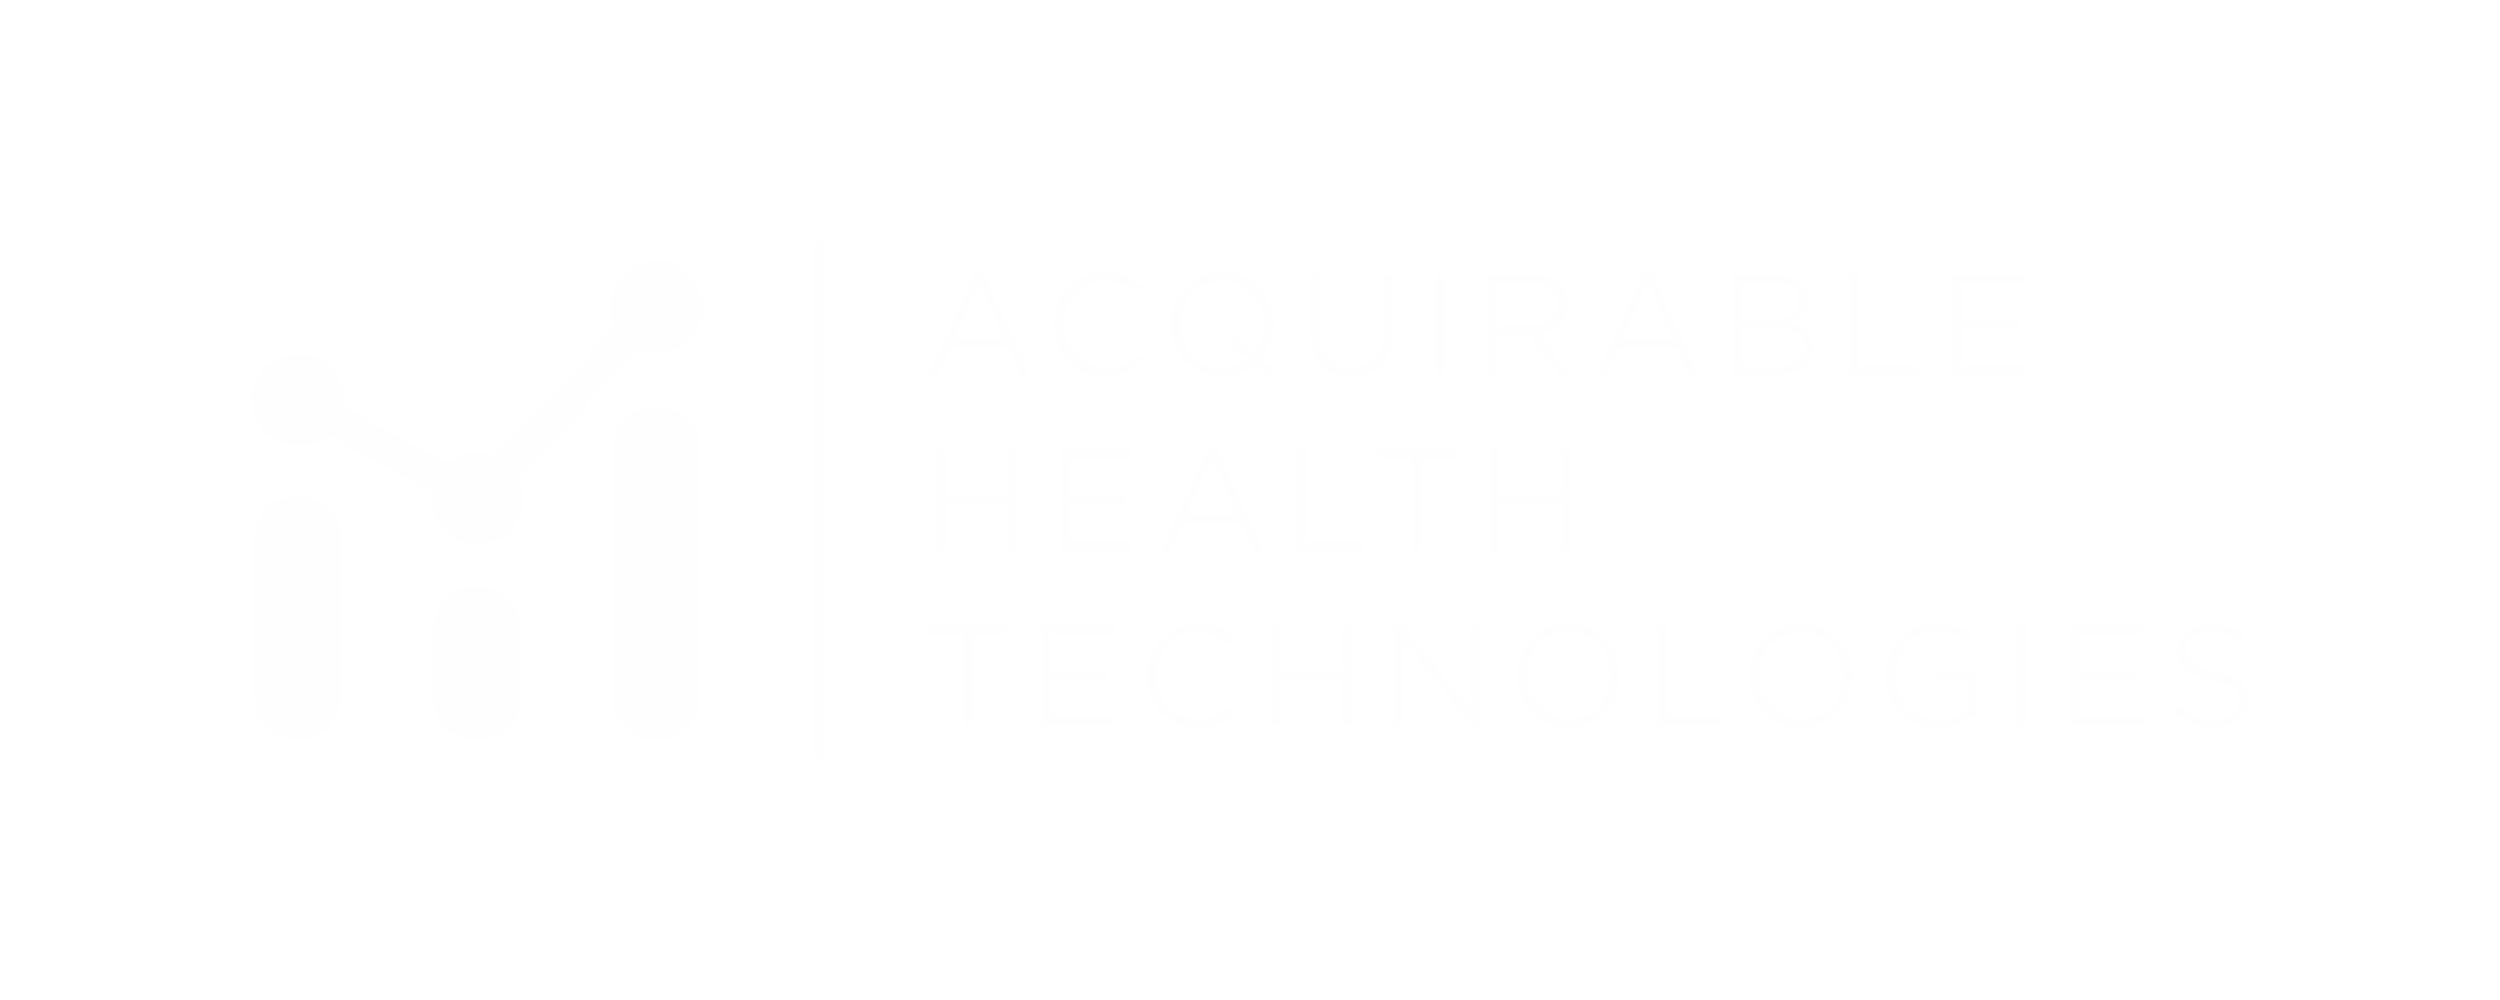 Acquirable Health Technologies logo left final white.png